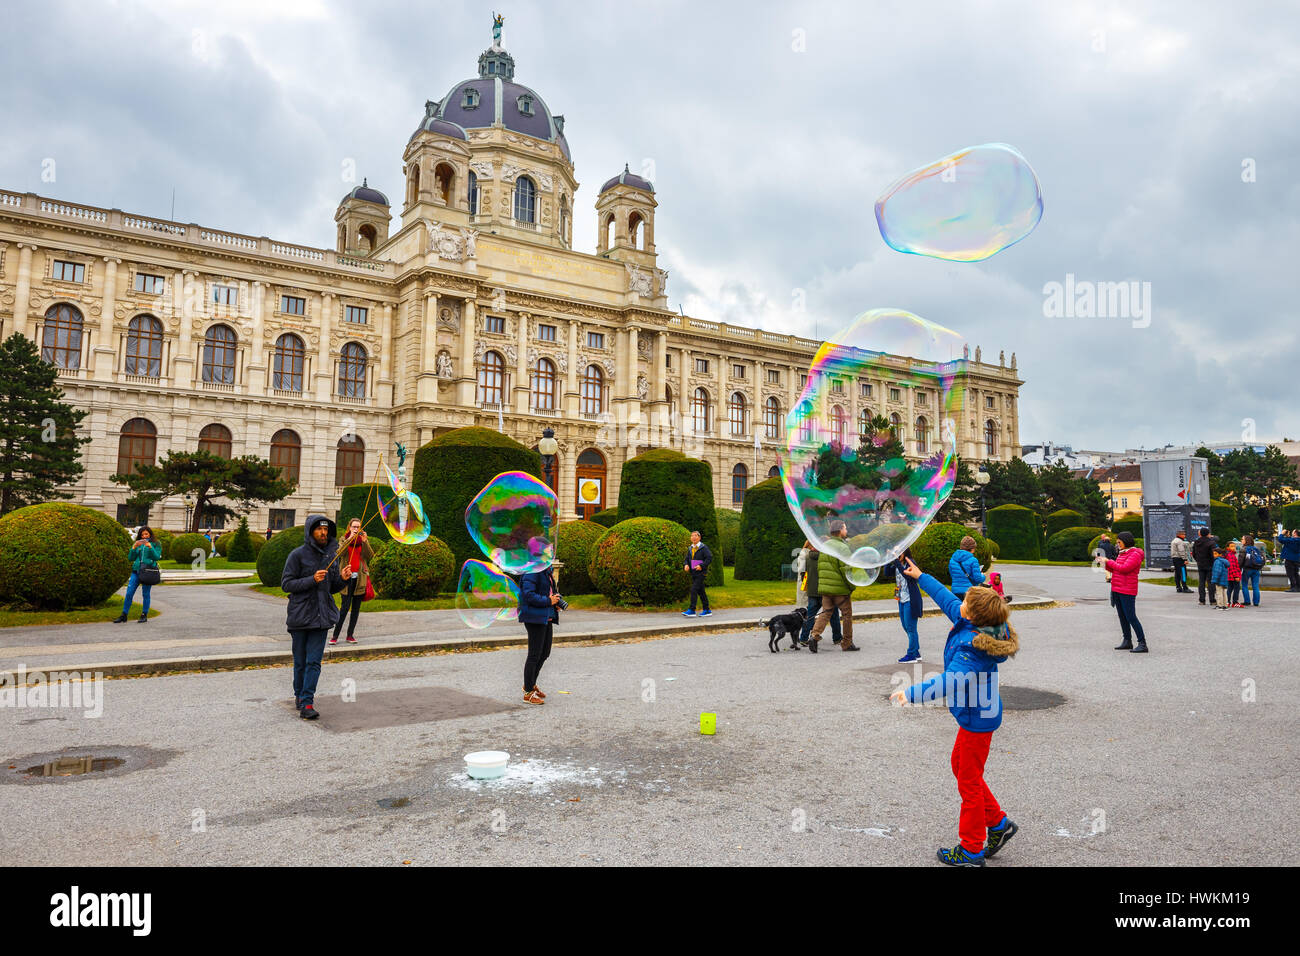 Vienna, Austria - 13 October, 2016: View of famous Natural History Museum with park and sculpture in Vienna, Austria Stock Photo